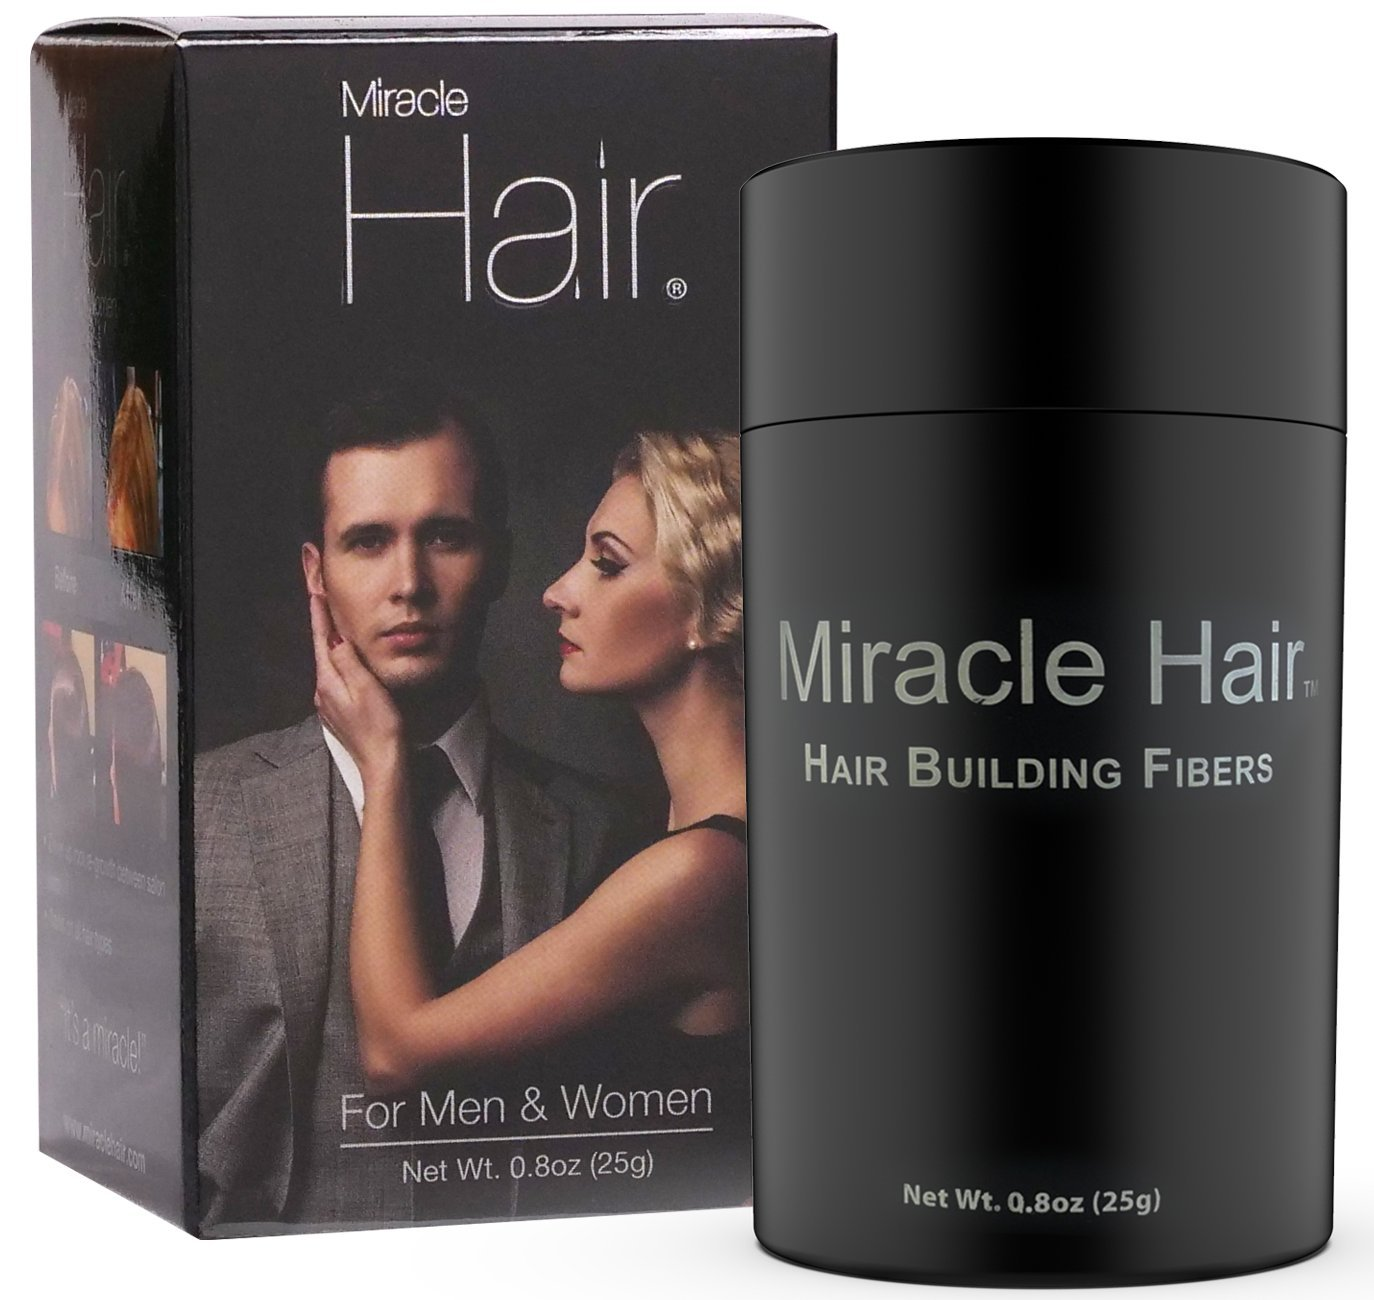 Miracle Hair - Hair Loss Concealer - Highest Quality Natural Hair Building Fibers Thickens Thinning Hair Instantly for Men And Women 25 Grams (75 Day Supply) by Miracle Hair